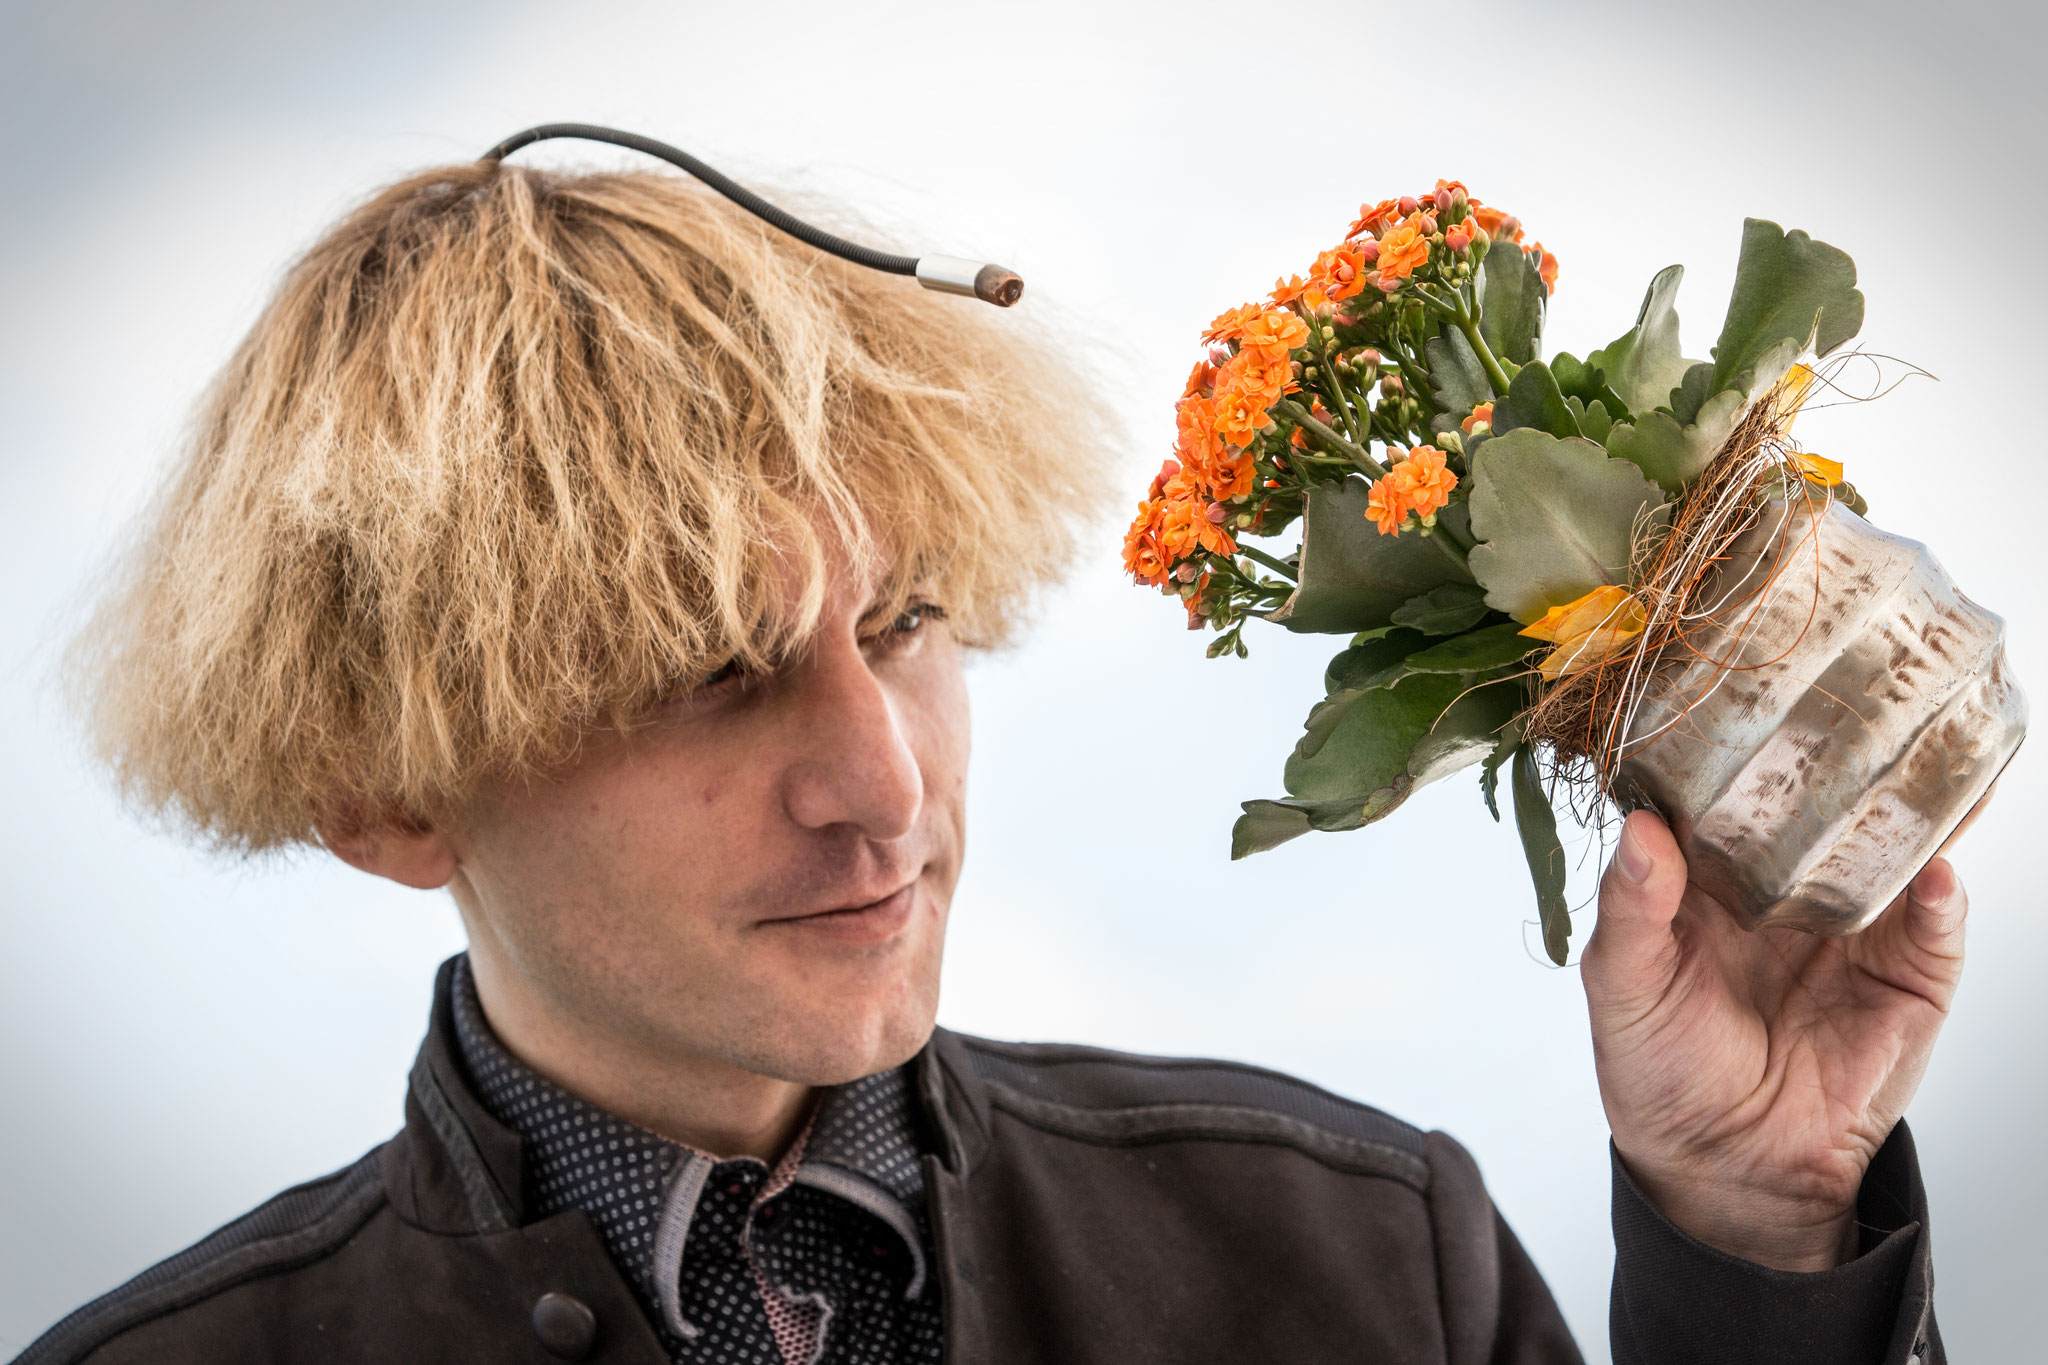 Neil Harbisson, British artist and the world's first officially recognized cyborg. St. Gallen, May 2017.